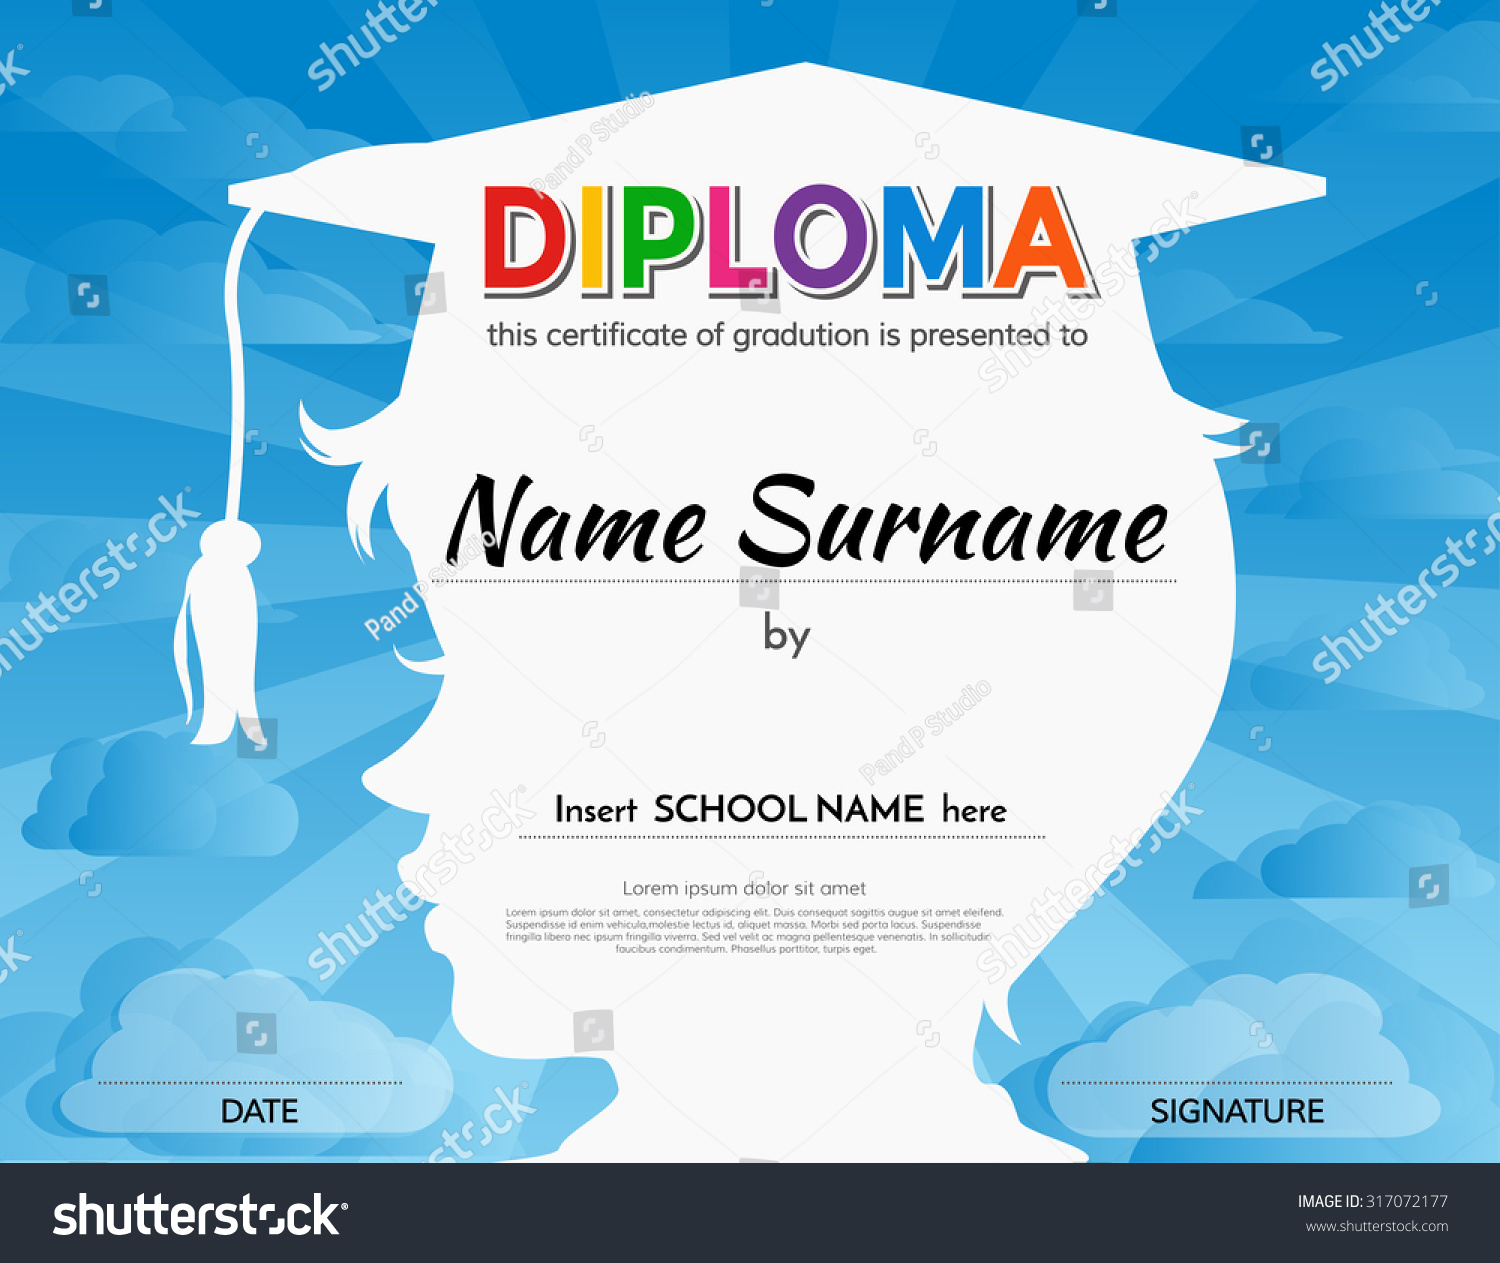 Royalty free certificates kindergarten and 317072177 stock photo certificates kindergarten and elementary school diploma certificate design template background 317072177 yelopaper Image collections